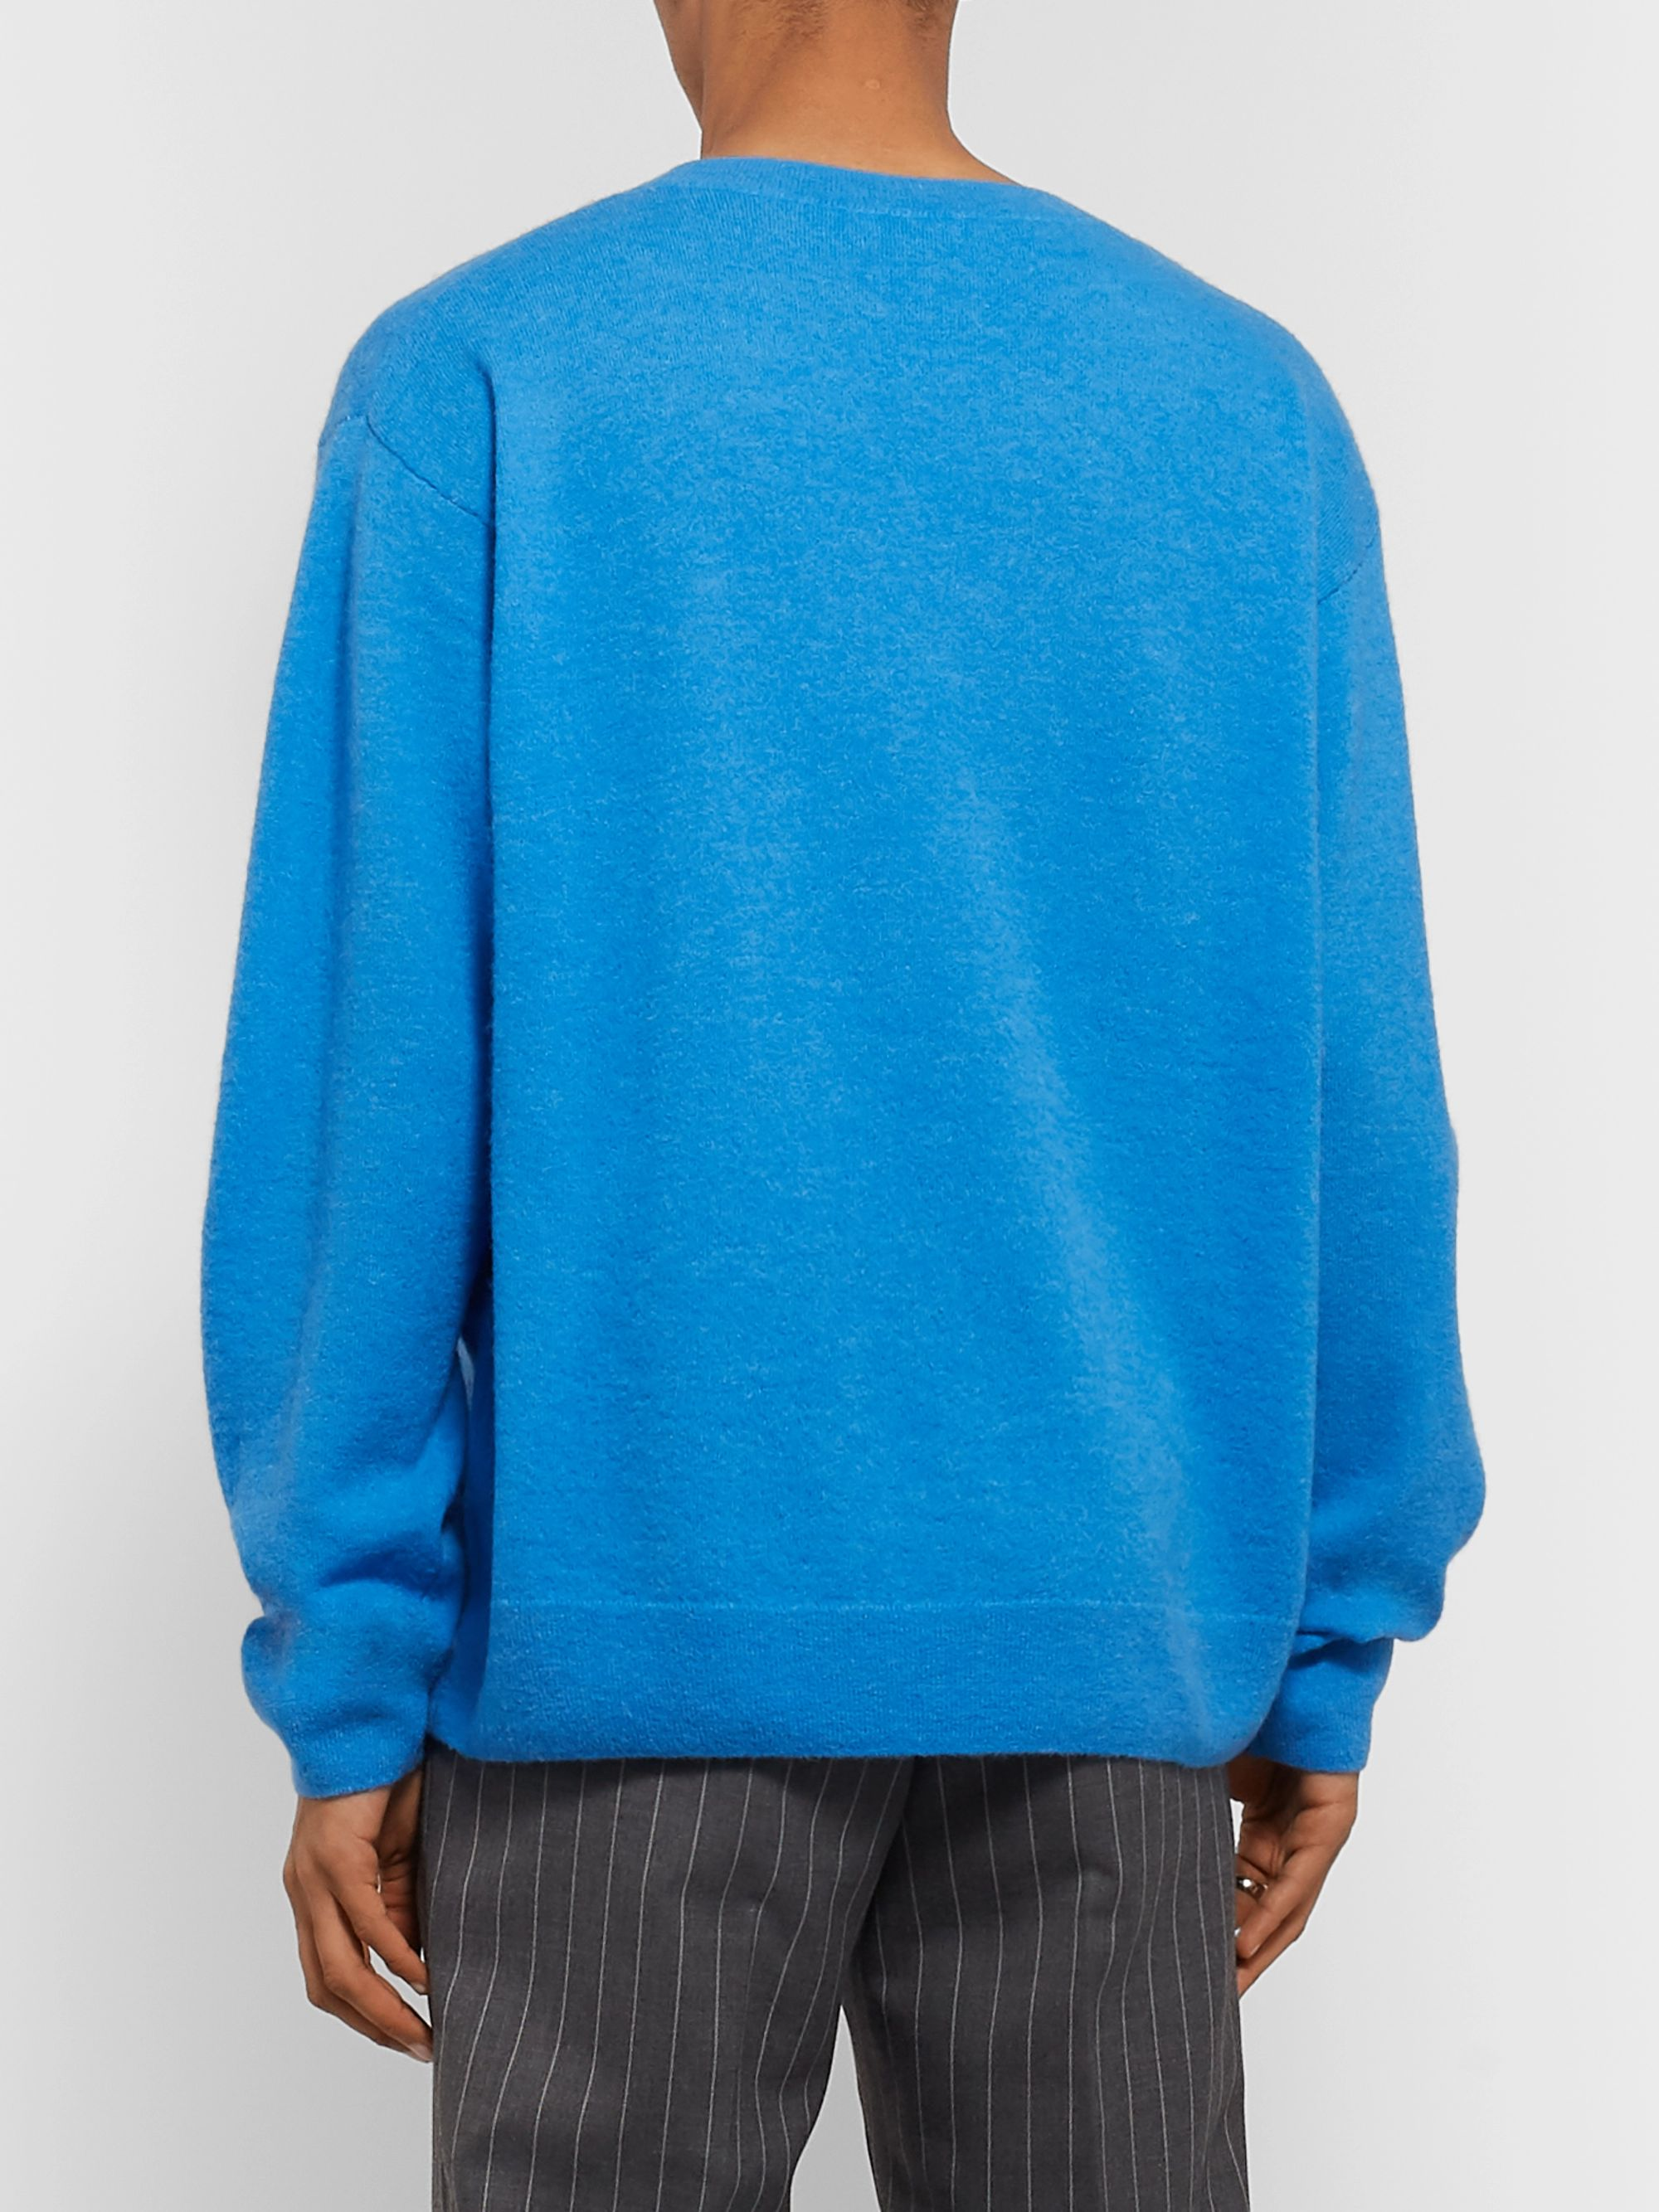 Dries Van Noten Knitted Sweater